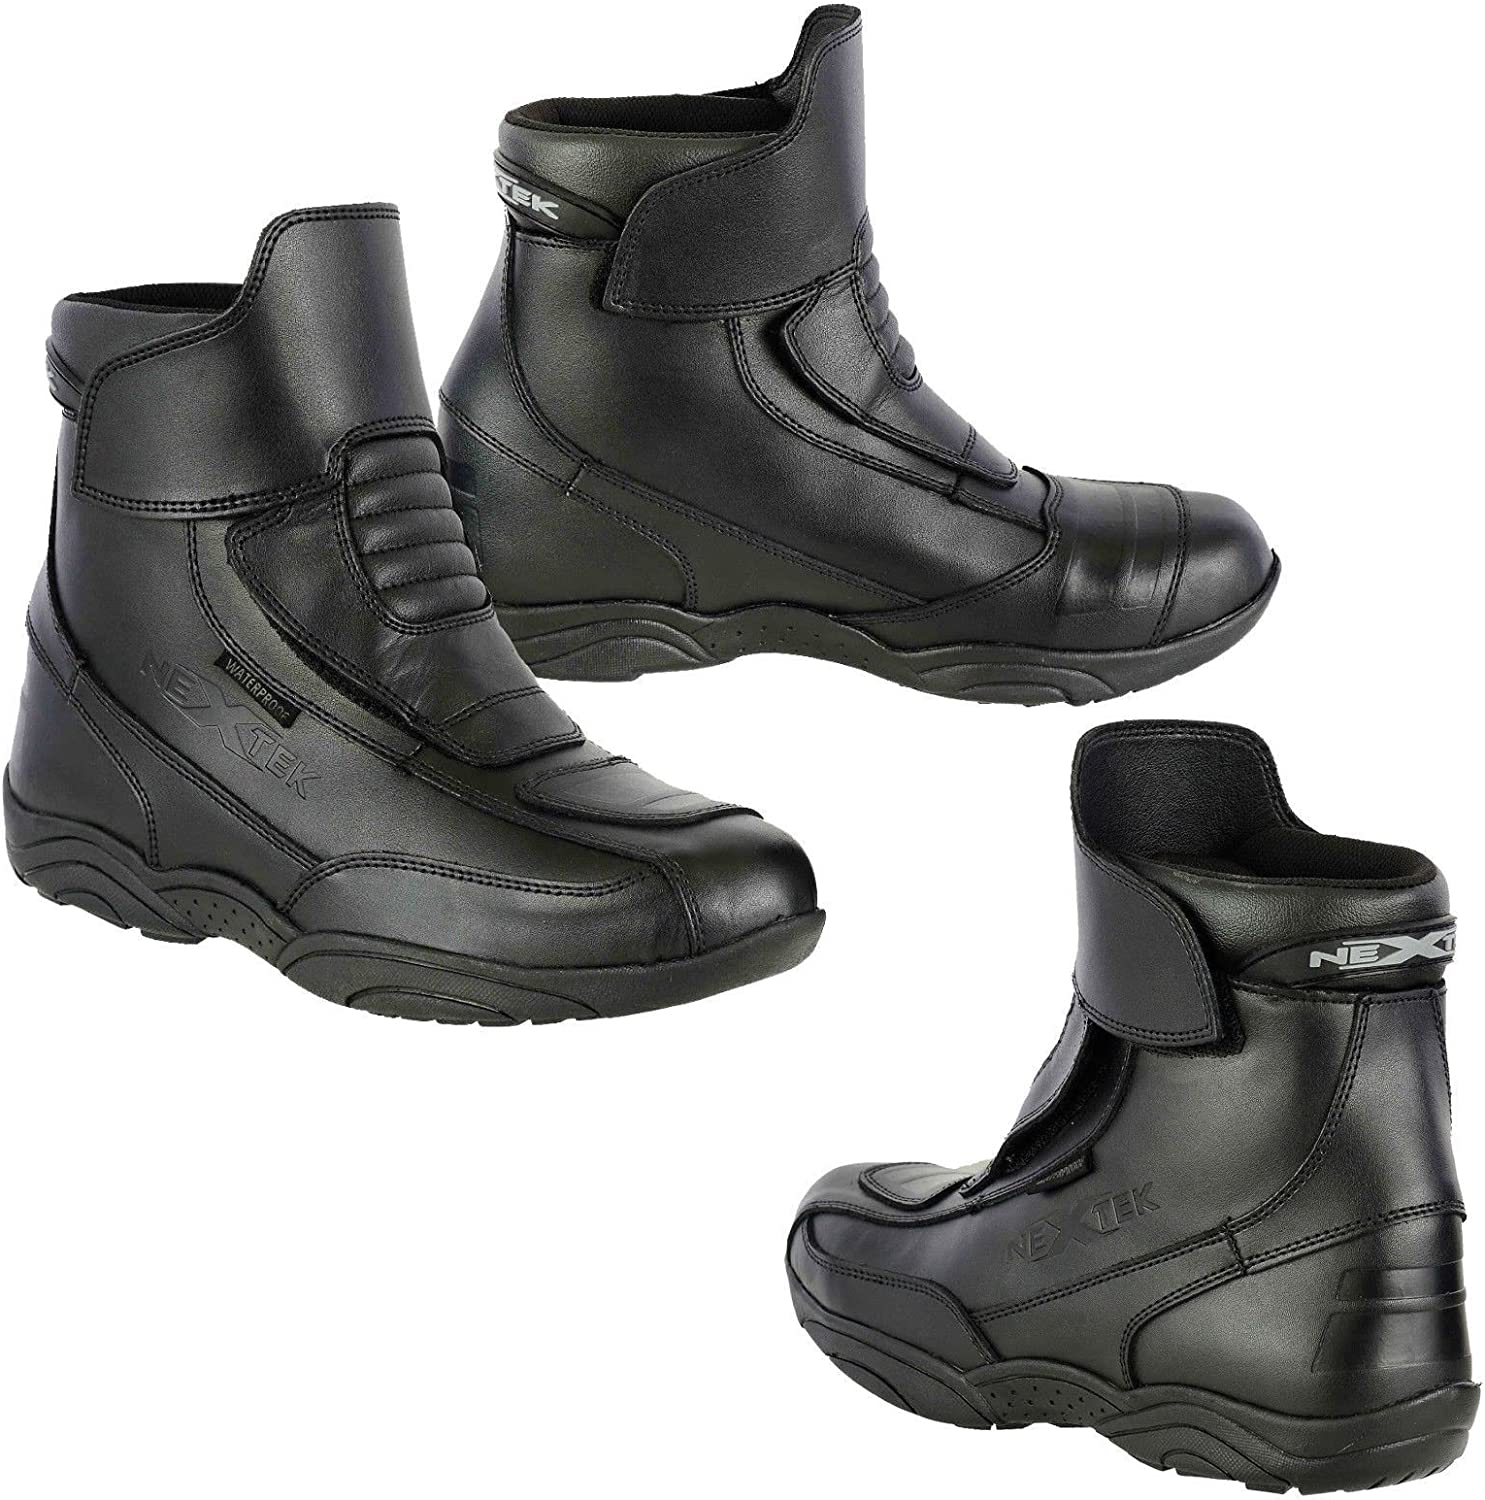 Touring Boot for Mens Boy Black UK 11 Profirst Global Motorbike Boots Motorcycle Waterproof Riding Shoes Short Ankle